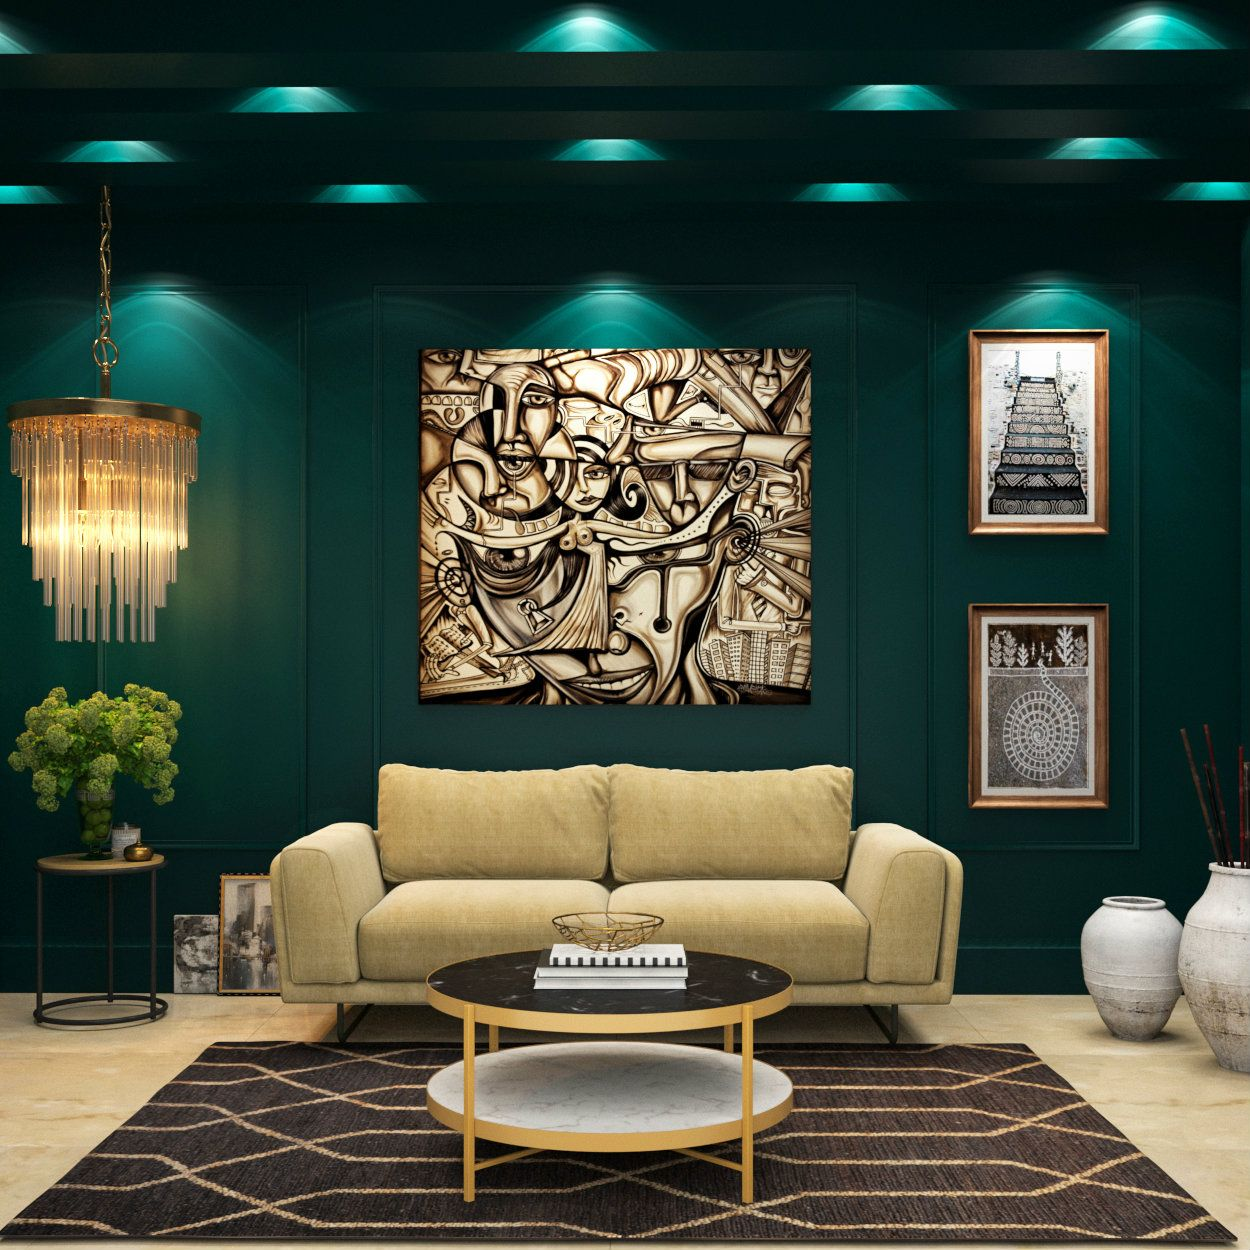 Royal Green That S How You Make Your Living Room Go Bold With This Beautiful Shade Living Room Green Living Room Decor Living Room